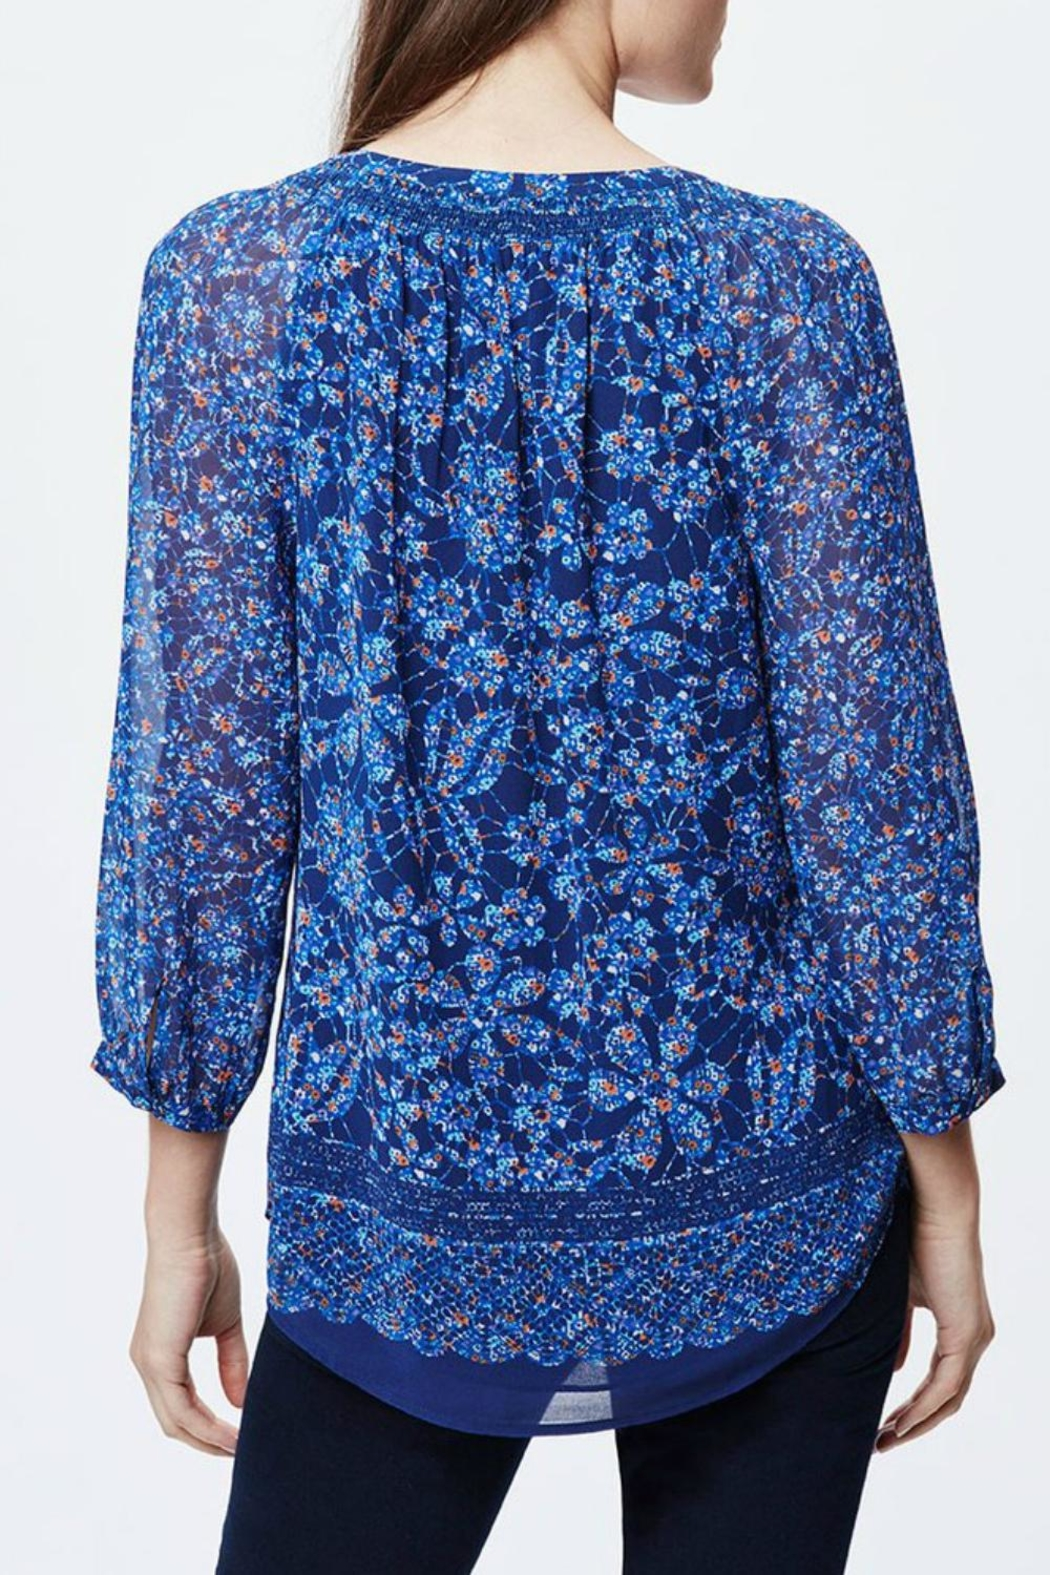 afb4fd606735d0 Daniel Rainn Blue Floral Blouse from New Jersey by Wink Boutique ...